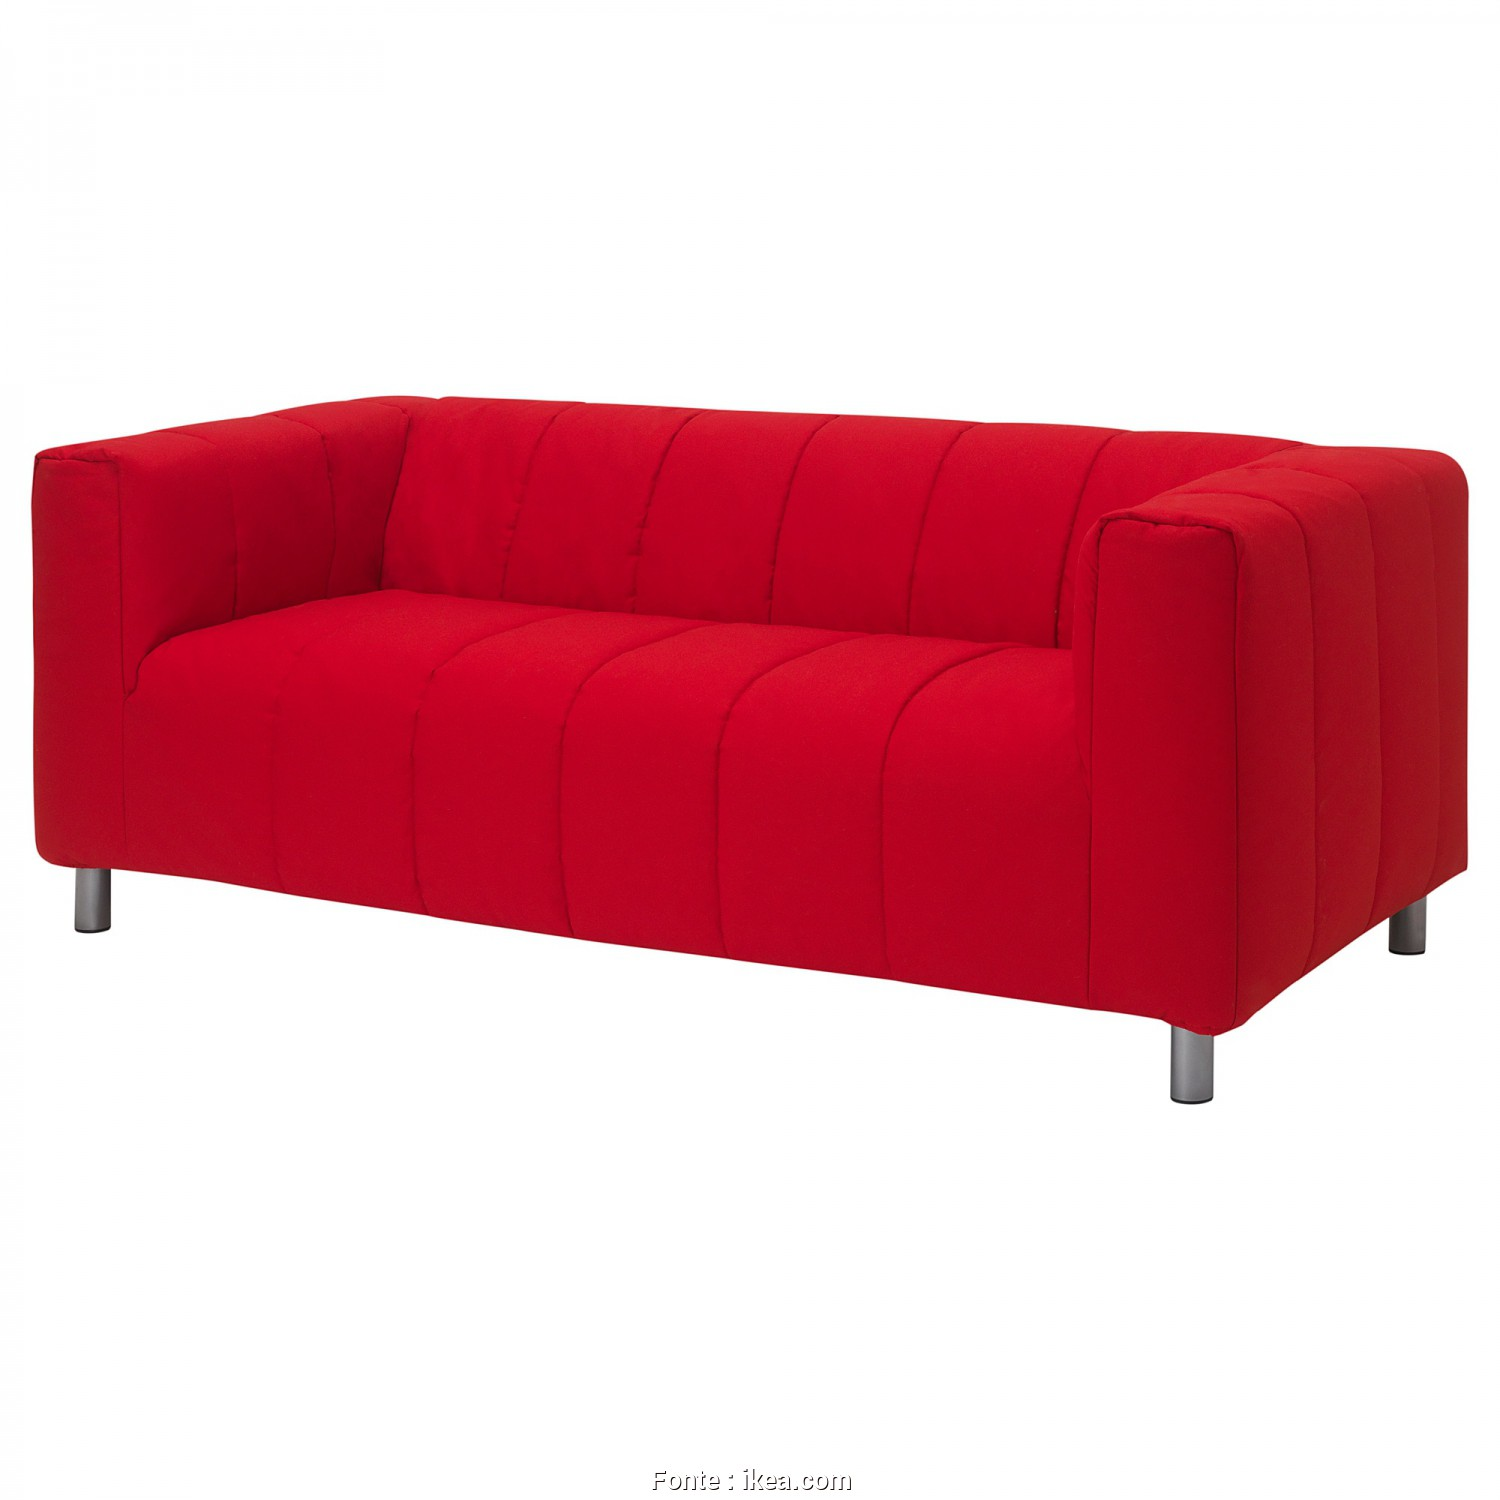 Costoso 4 Ikea Klippan 2 Seater